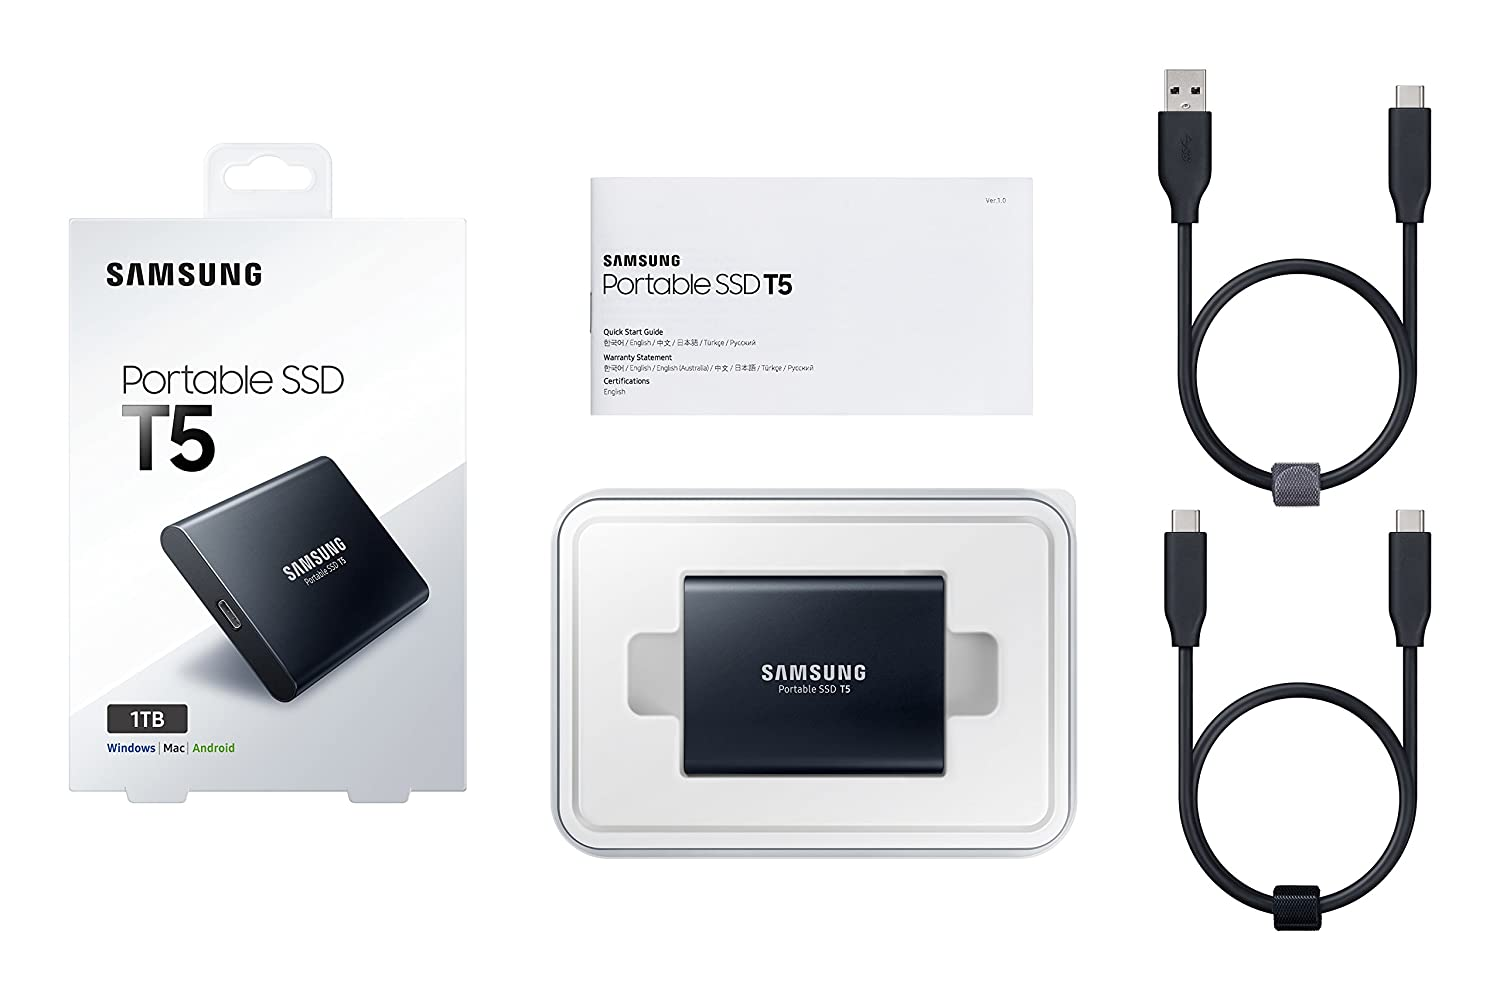 Samsung T5 Portable SSD - 1TB - USB 3 1 External SSD (MU-PA1T0B/AM), Black